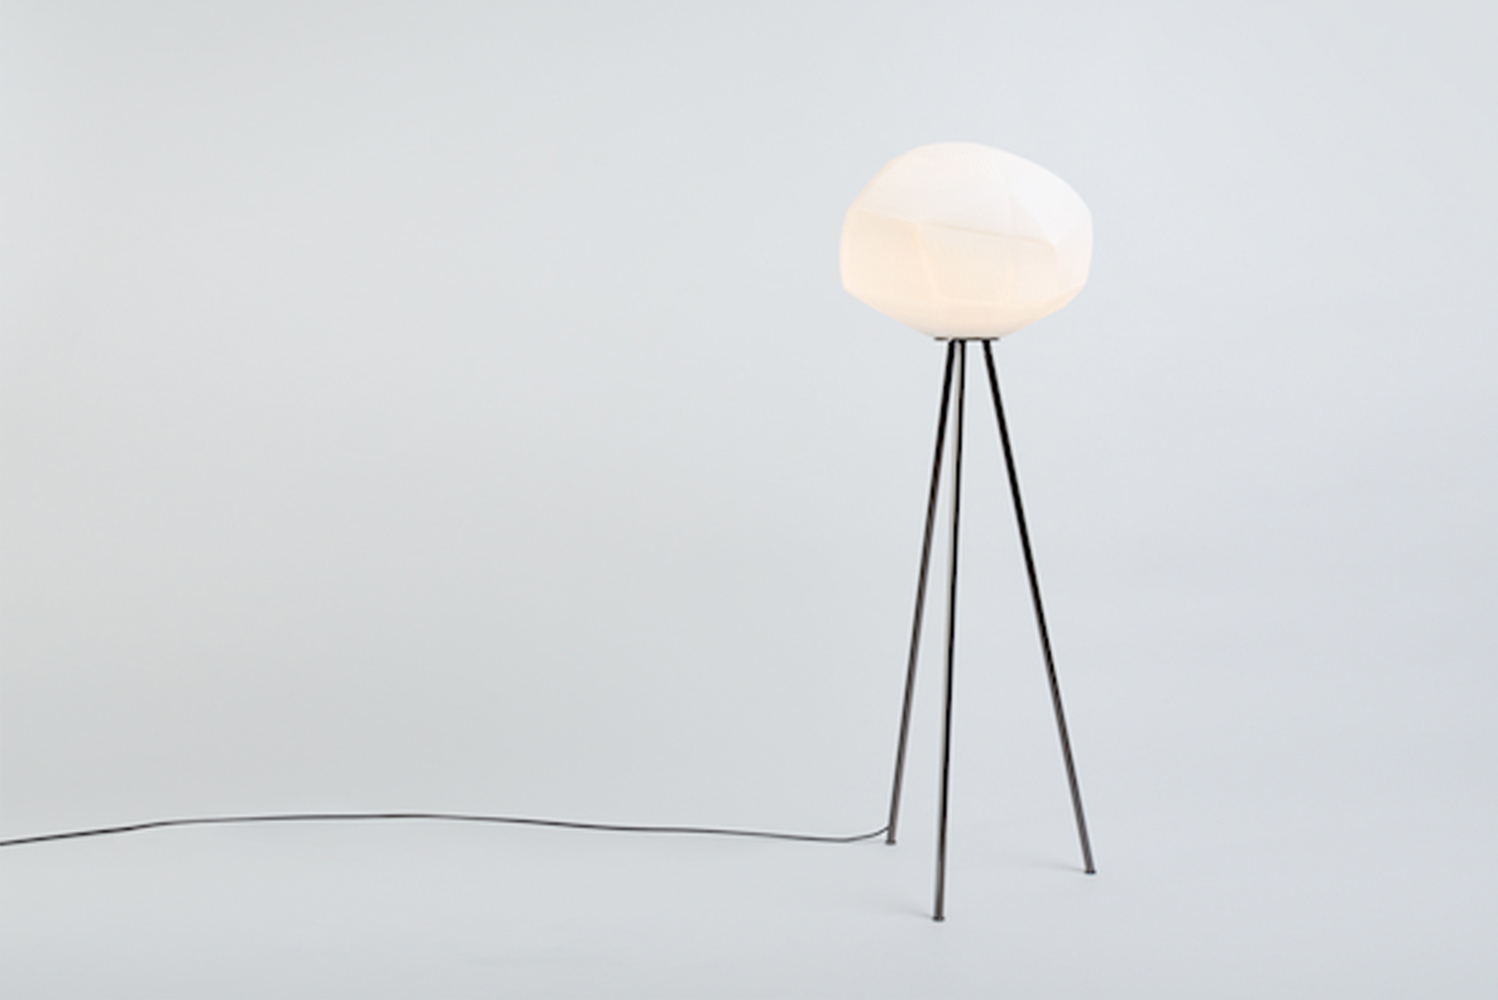 Each lamp comes with a dimmable light bulb and is available with either a black chrome or brushed brass base. It can be adapted into a table, floor or pendant lamp.